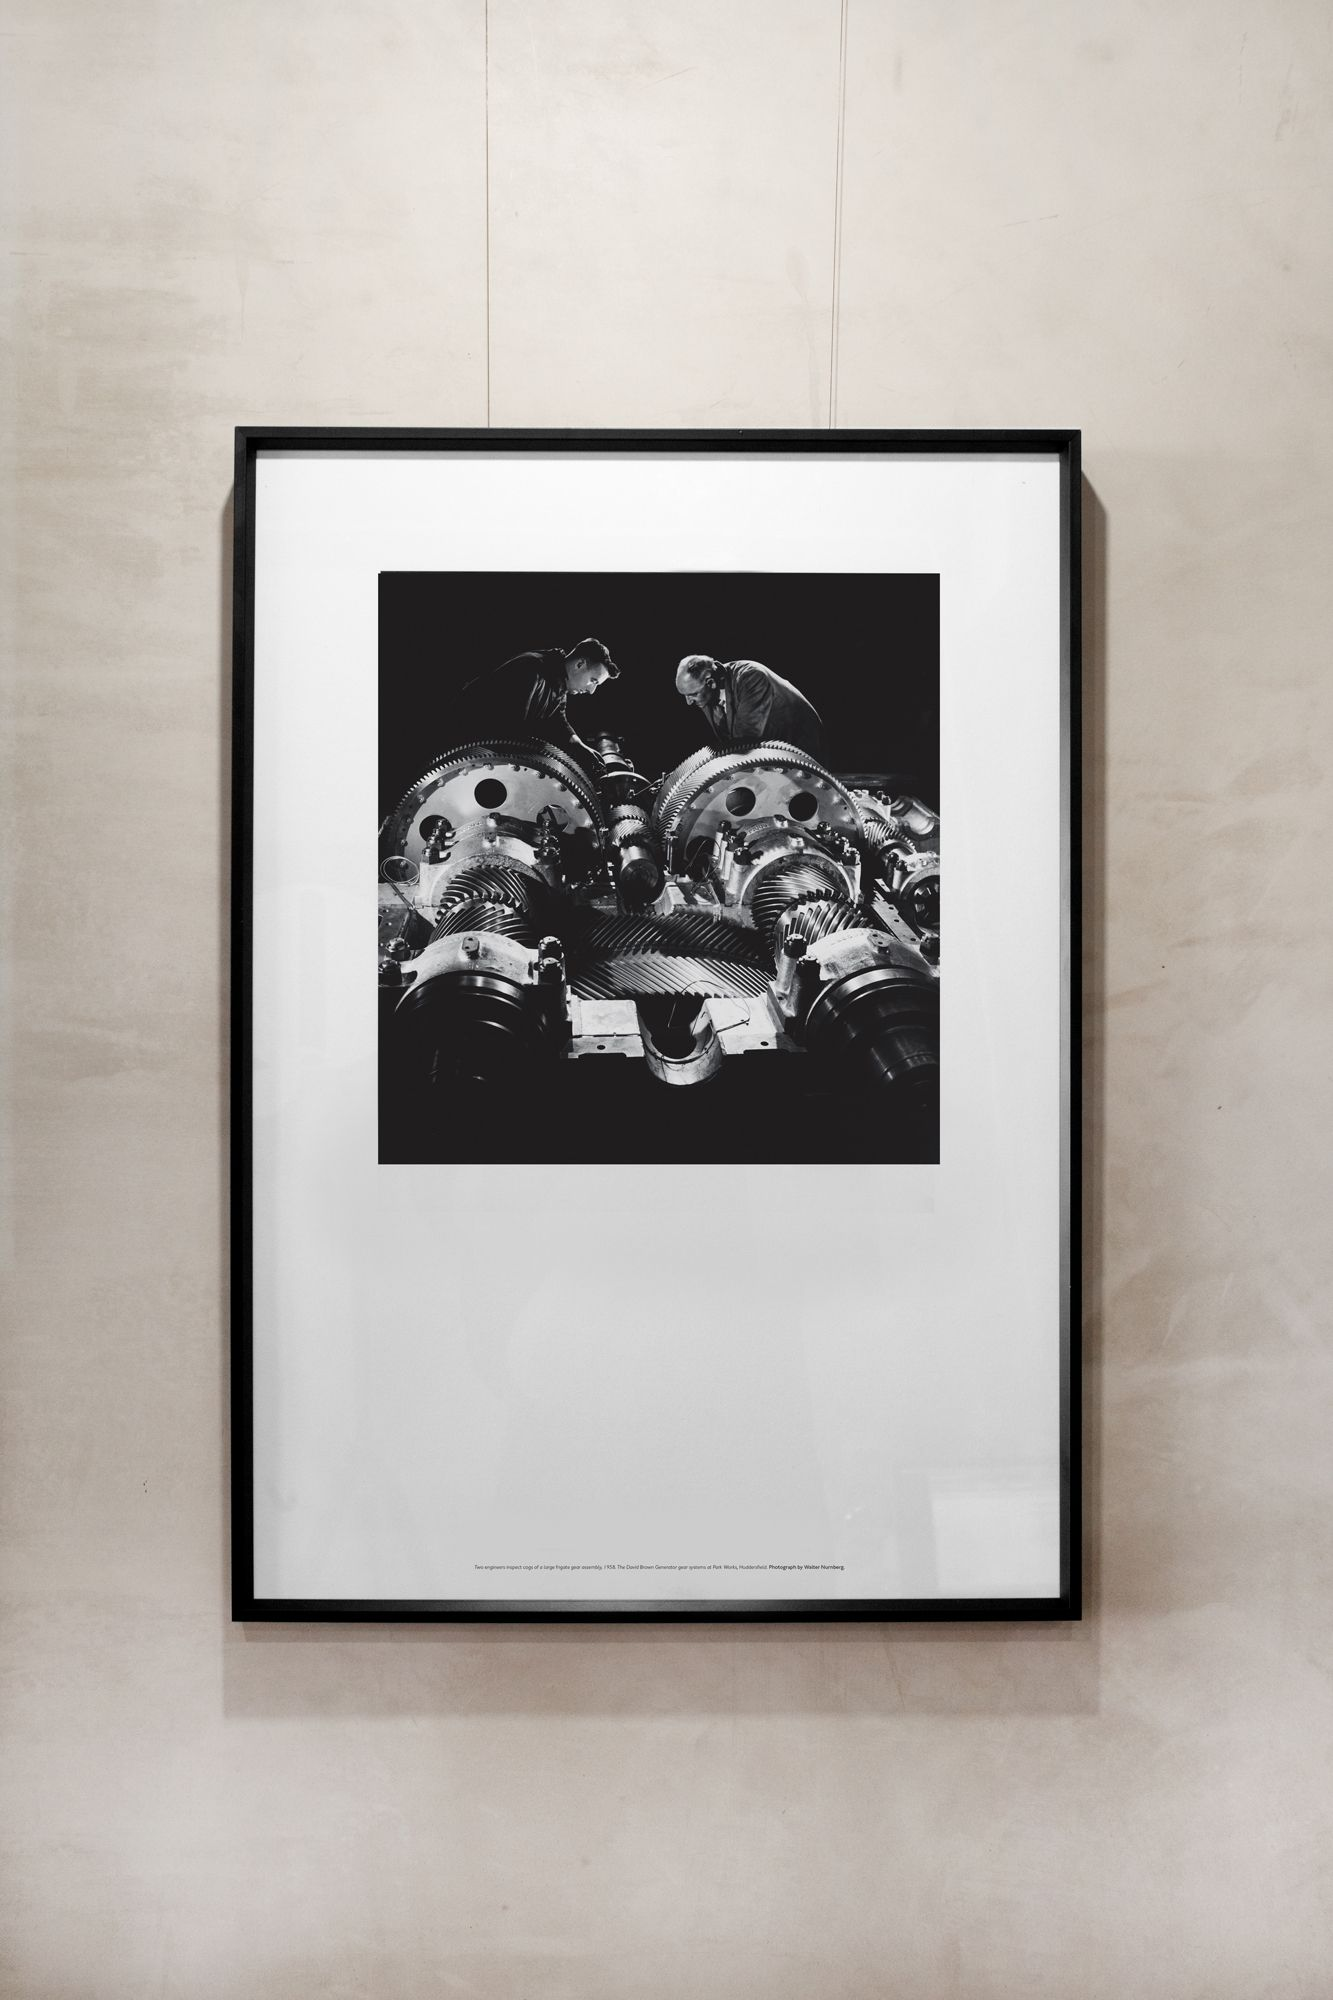 Man Made Poster: Gear Assembly  £55.00  A2 Poster printed on Hahnemuhle Photo Rag paper. Sold unframed.